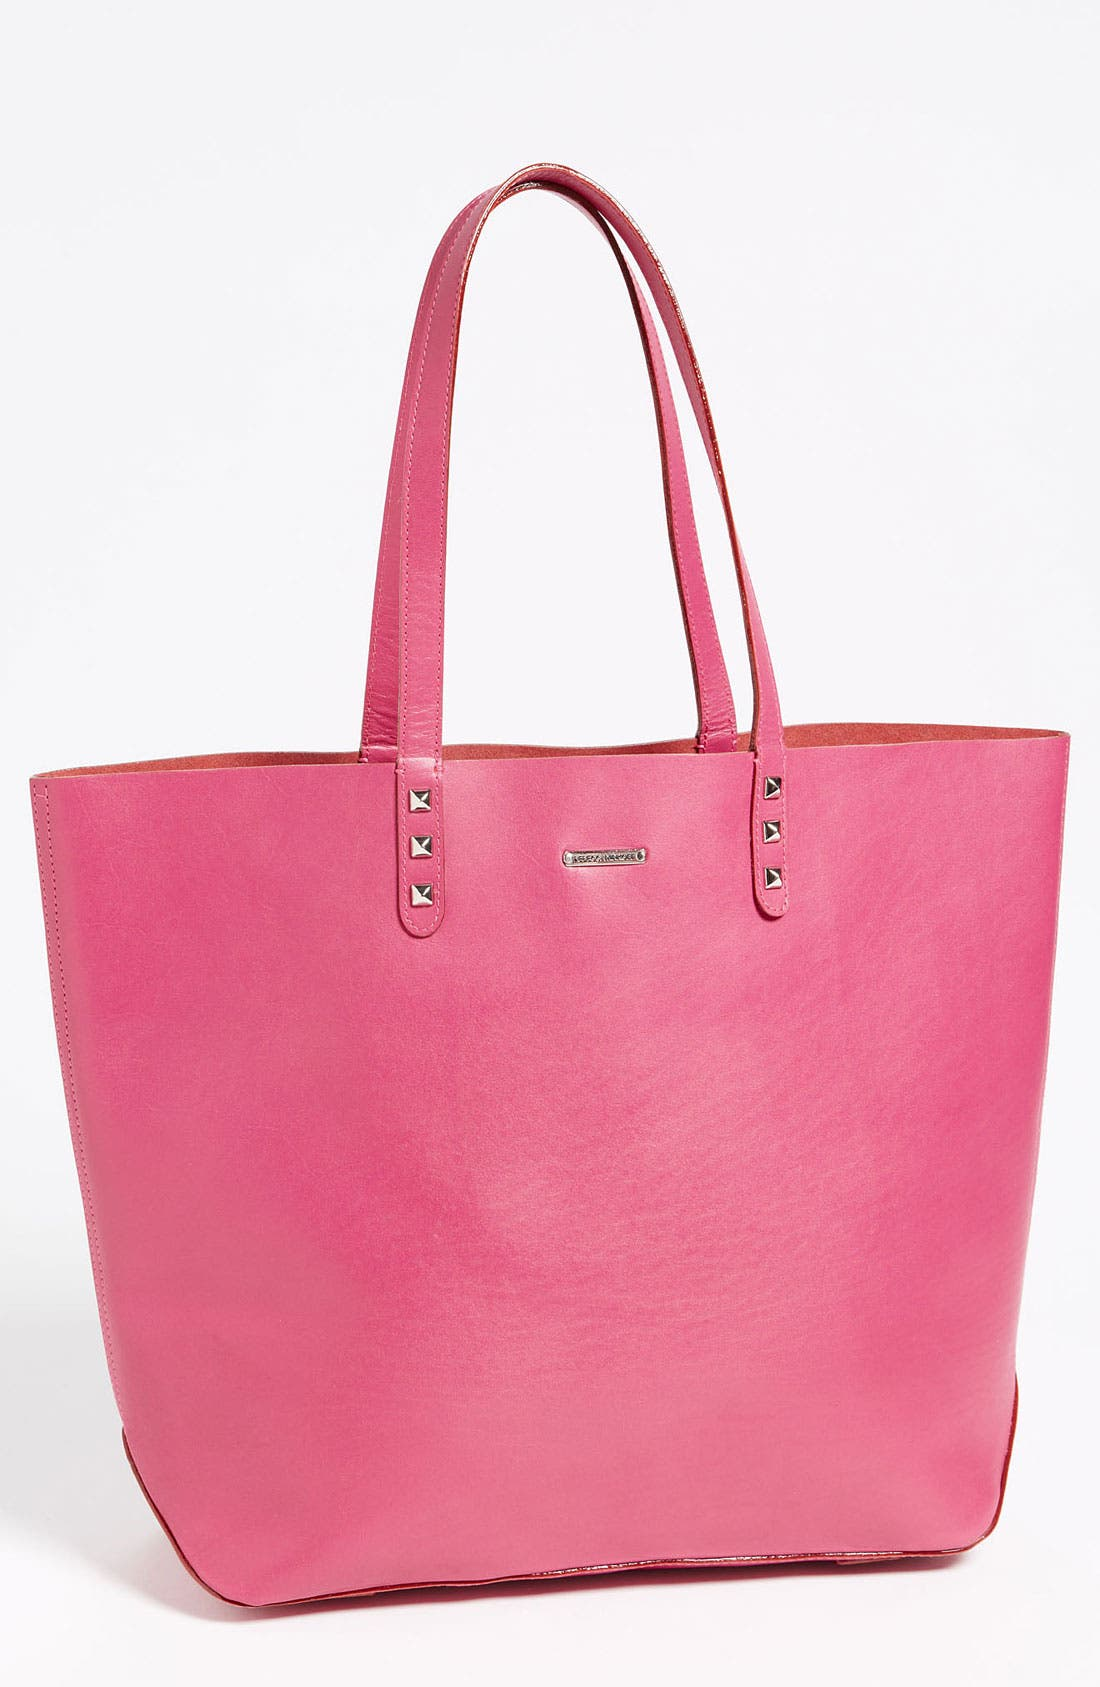 Alternate Image 1 Selected - Rebecca Minkoff 'Dylan' Tote